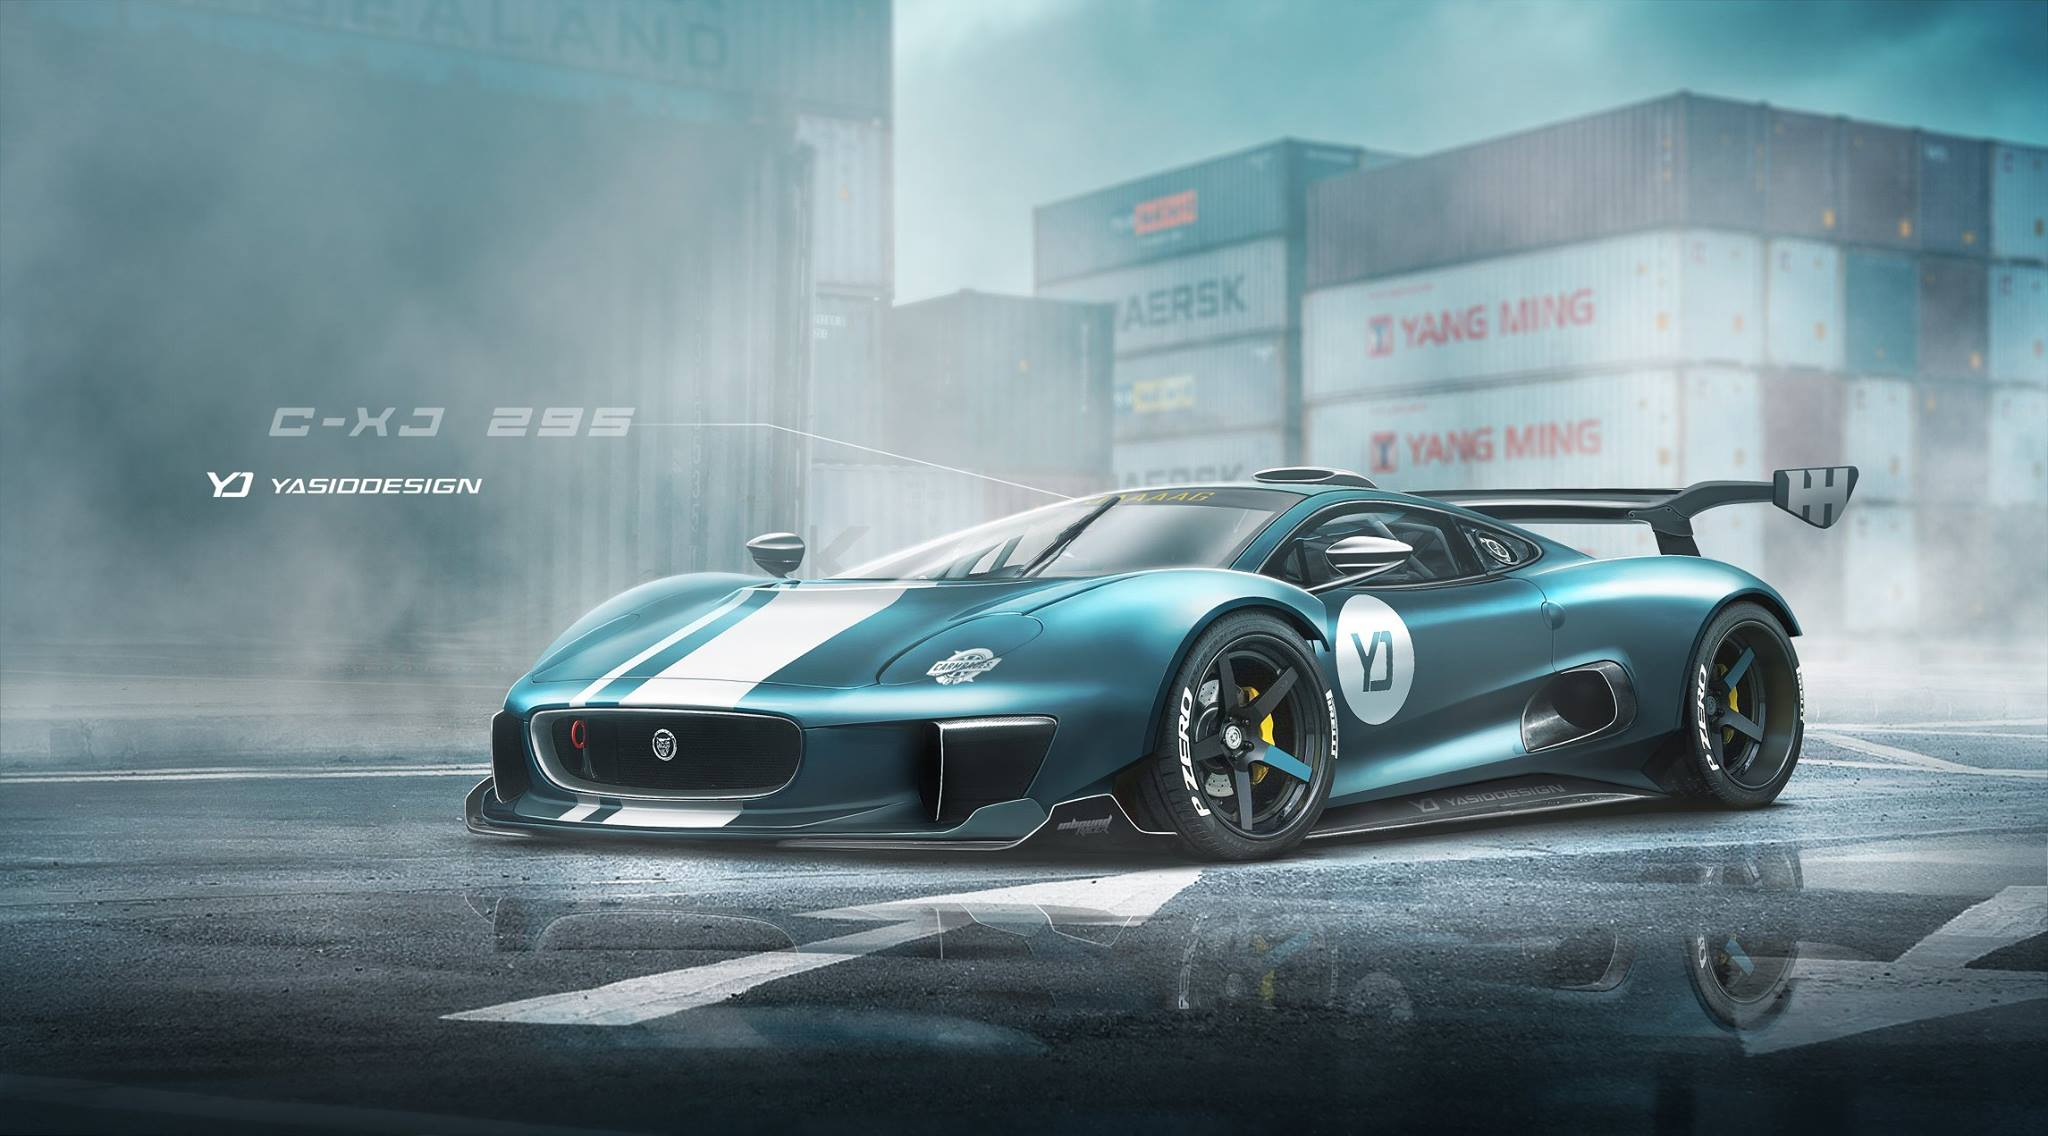 Home Design Company Names Jaguar C X75 Xj220 Rendered As The Supercar The Company